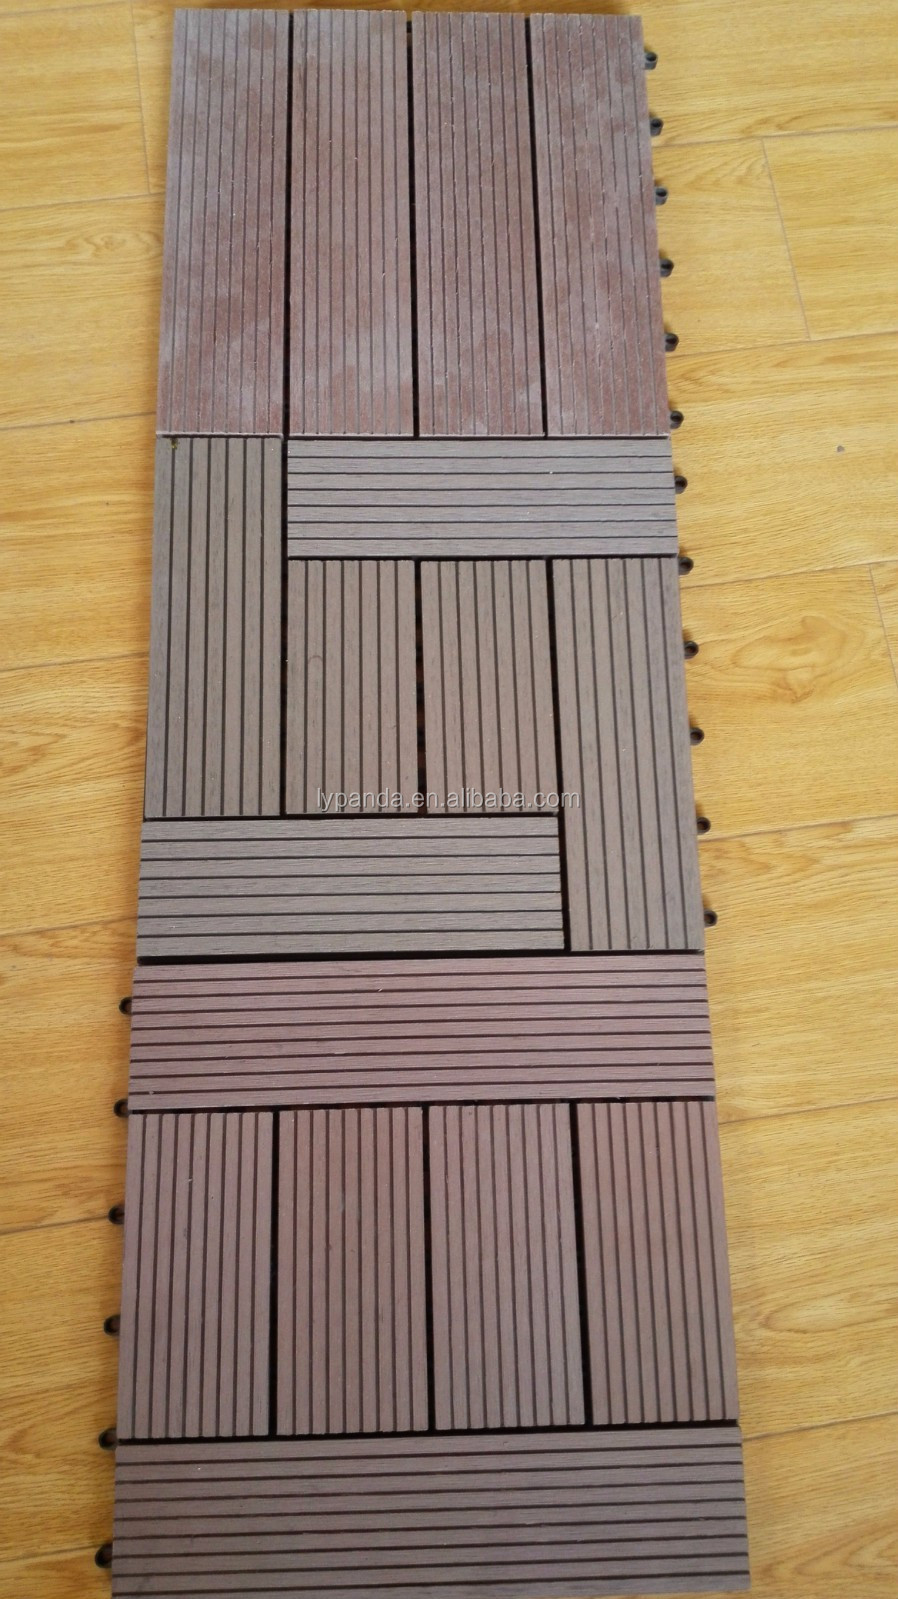 eco-friendly and easy install wpc diy tiles for outdoor garden/terrace/roof